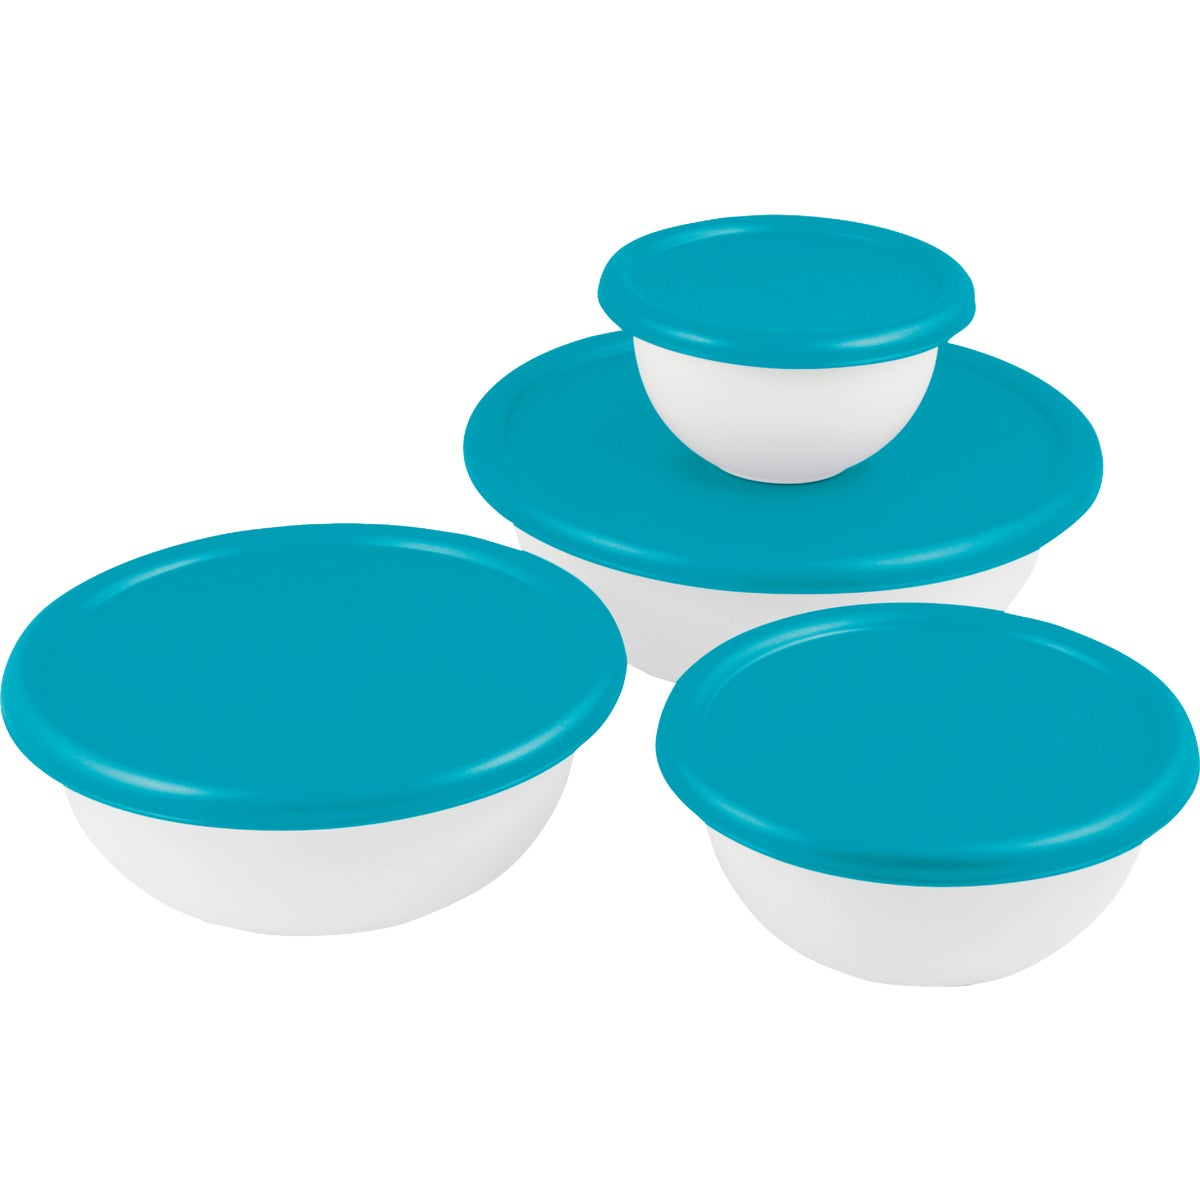 8PC COVERED BOWL SET